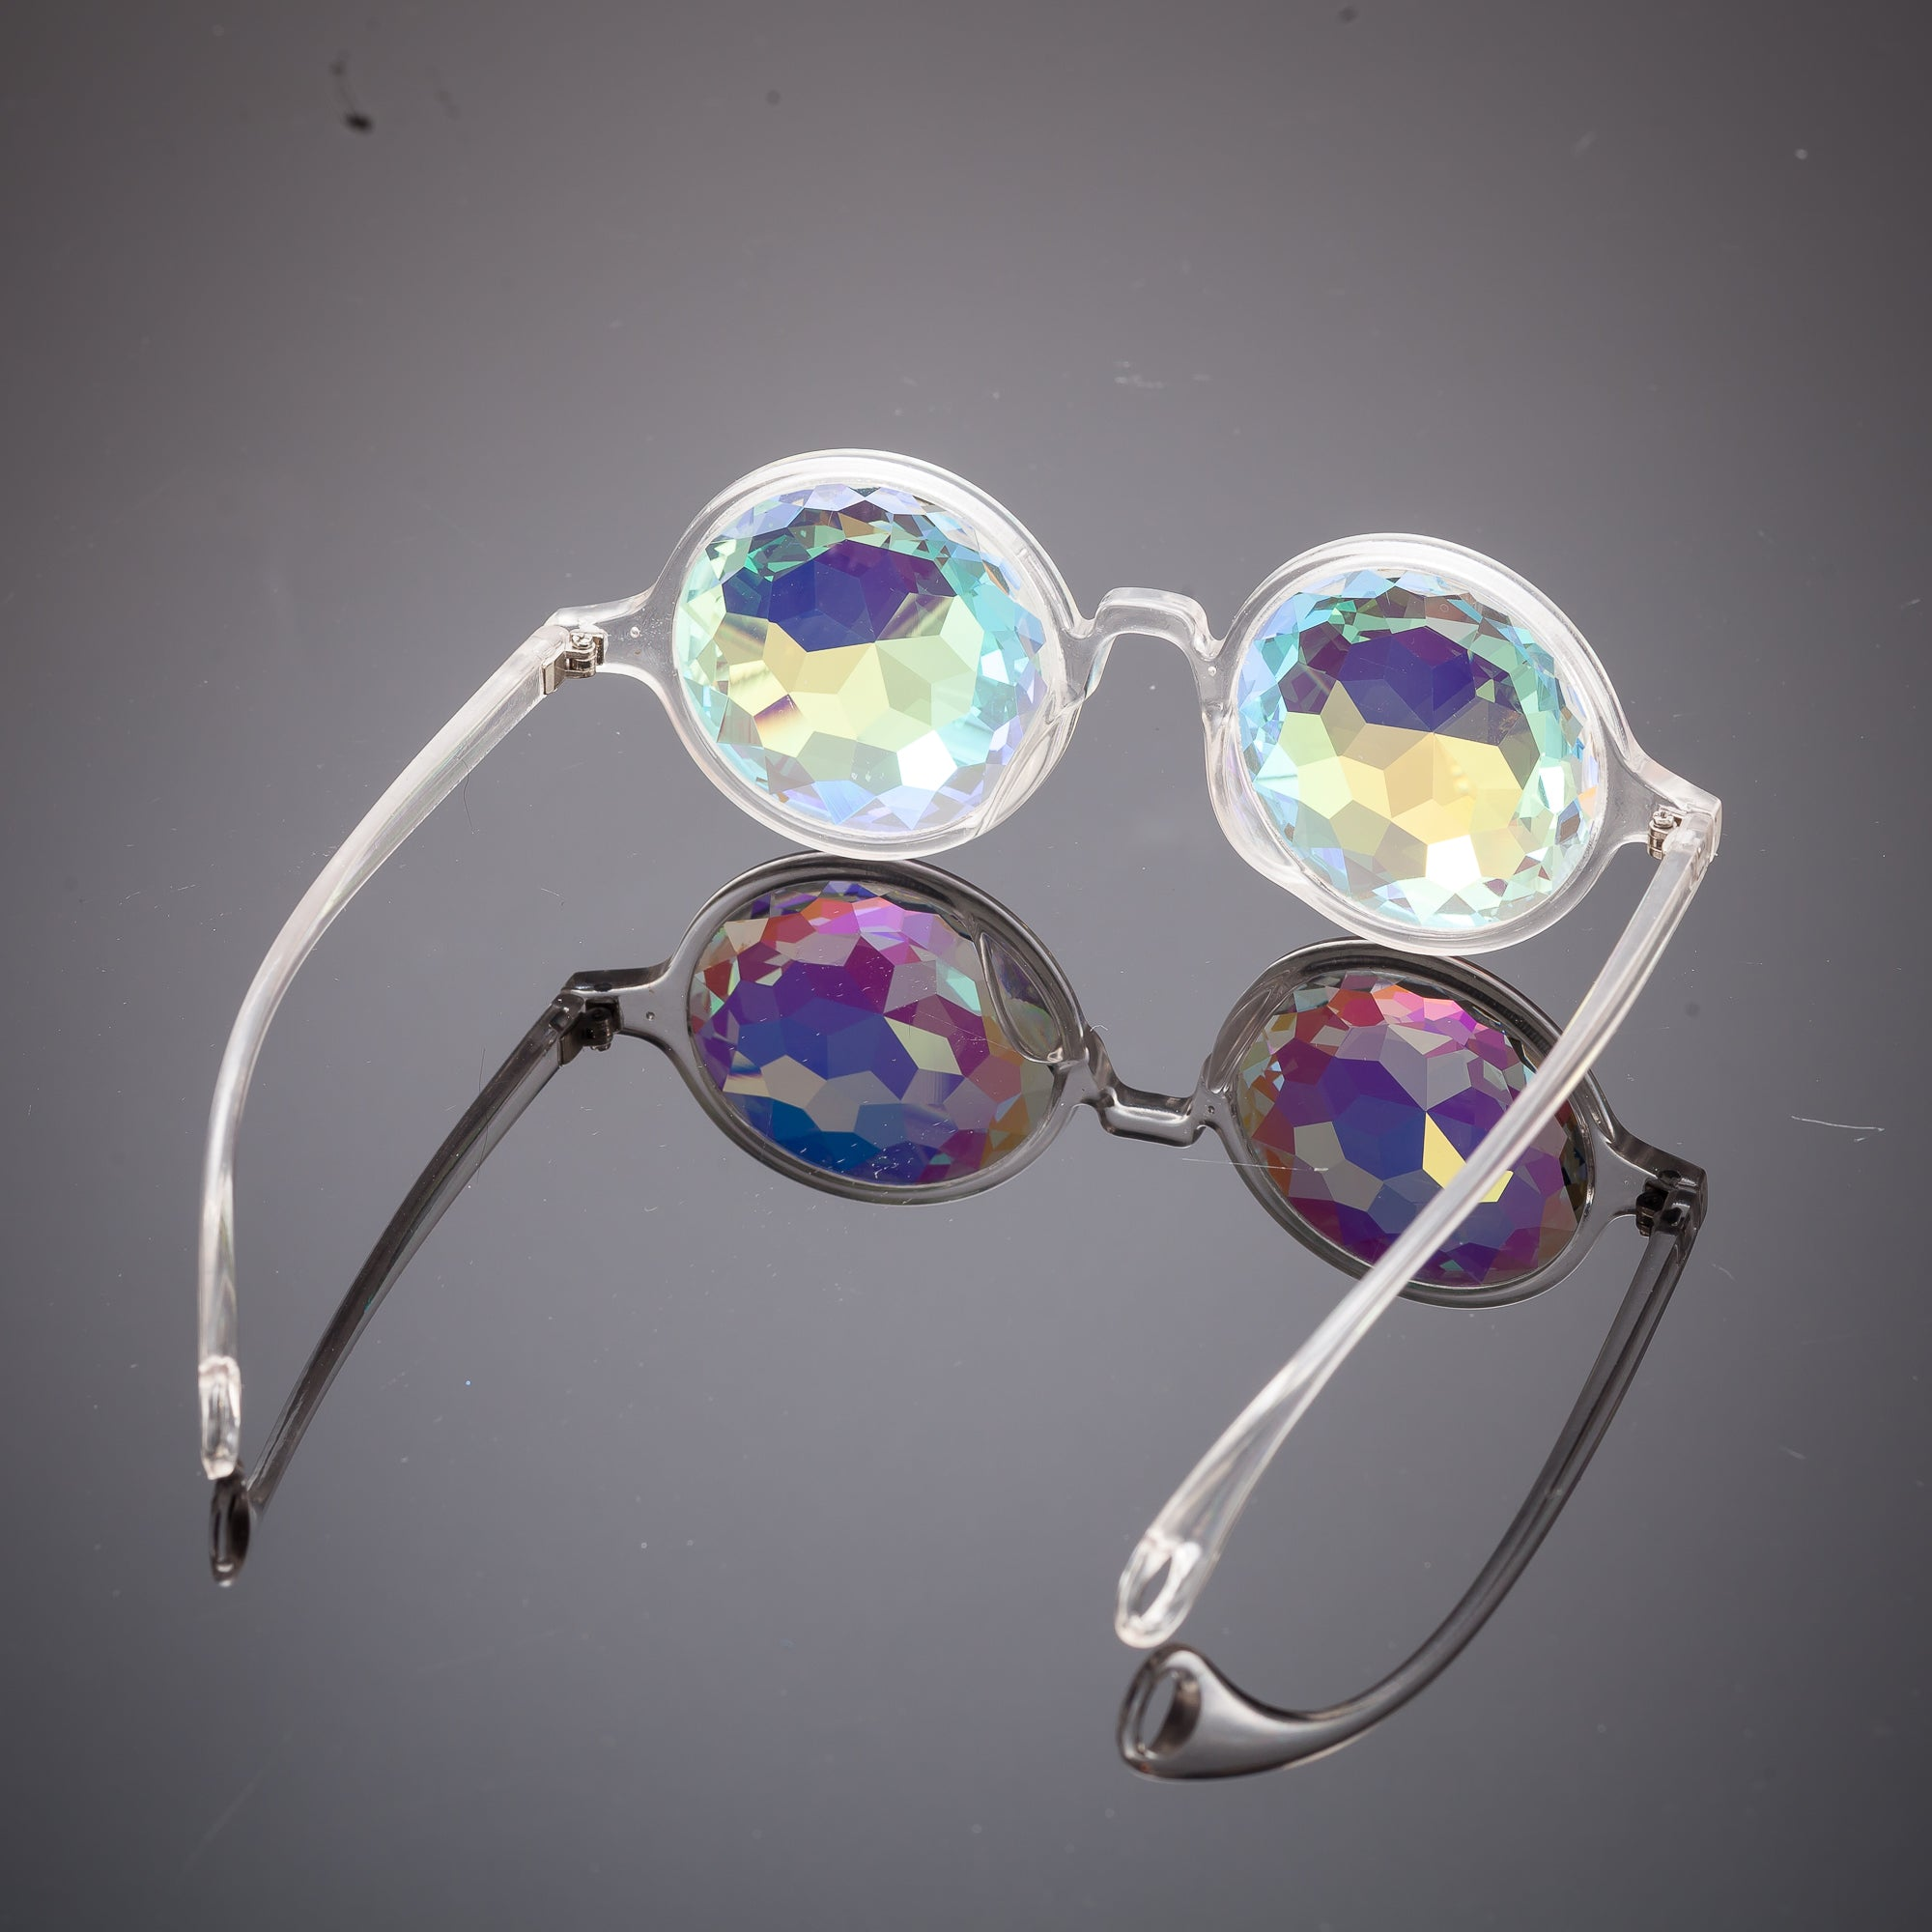 Clear Kaleidoscope Glasses - SuperFried